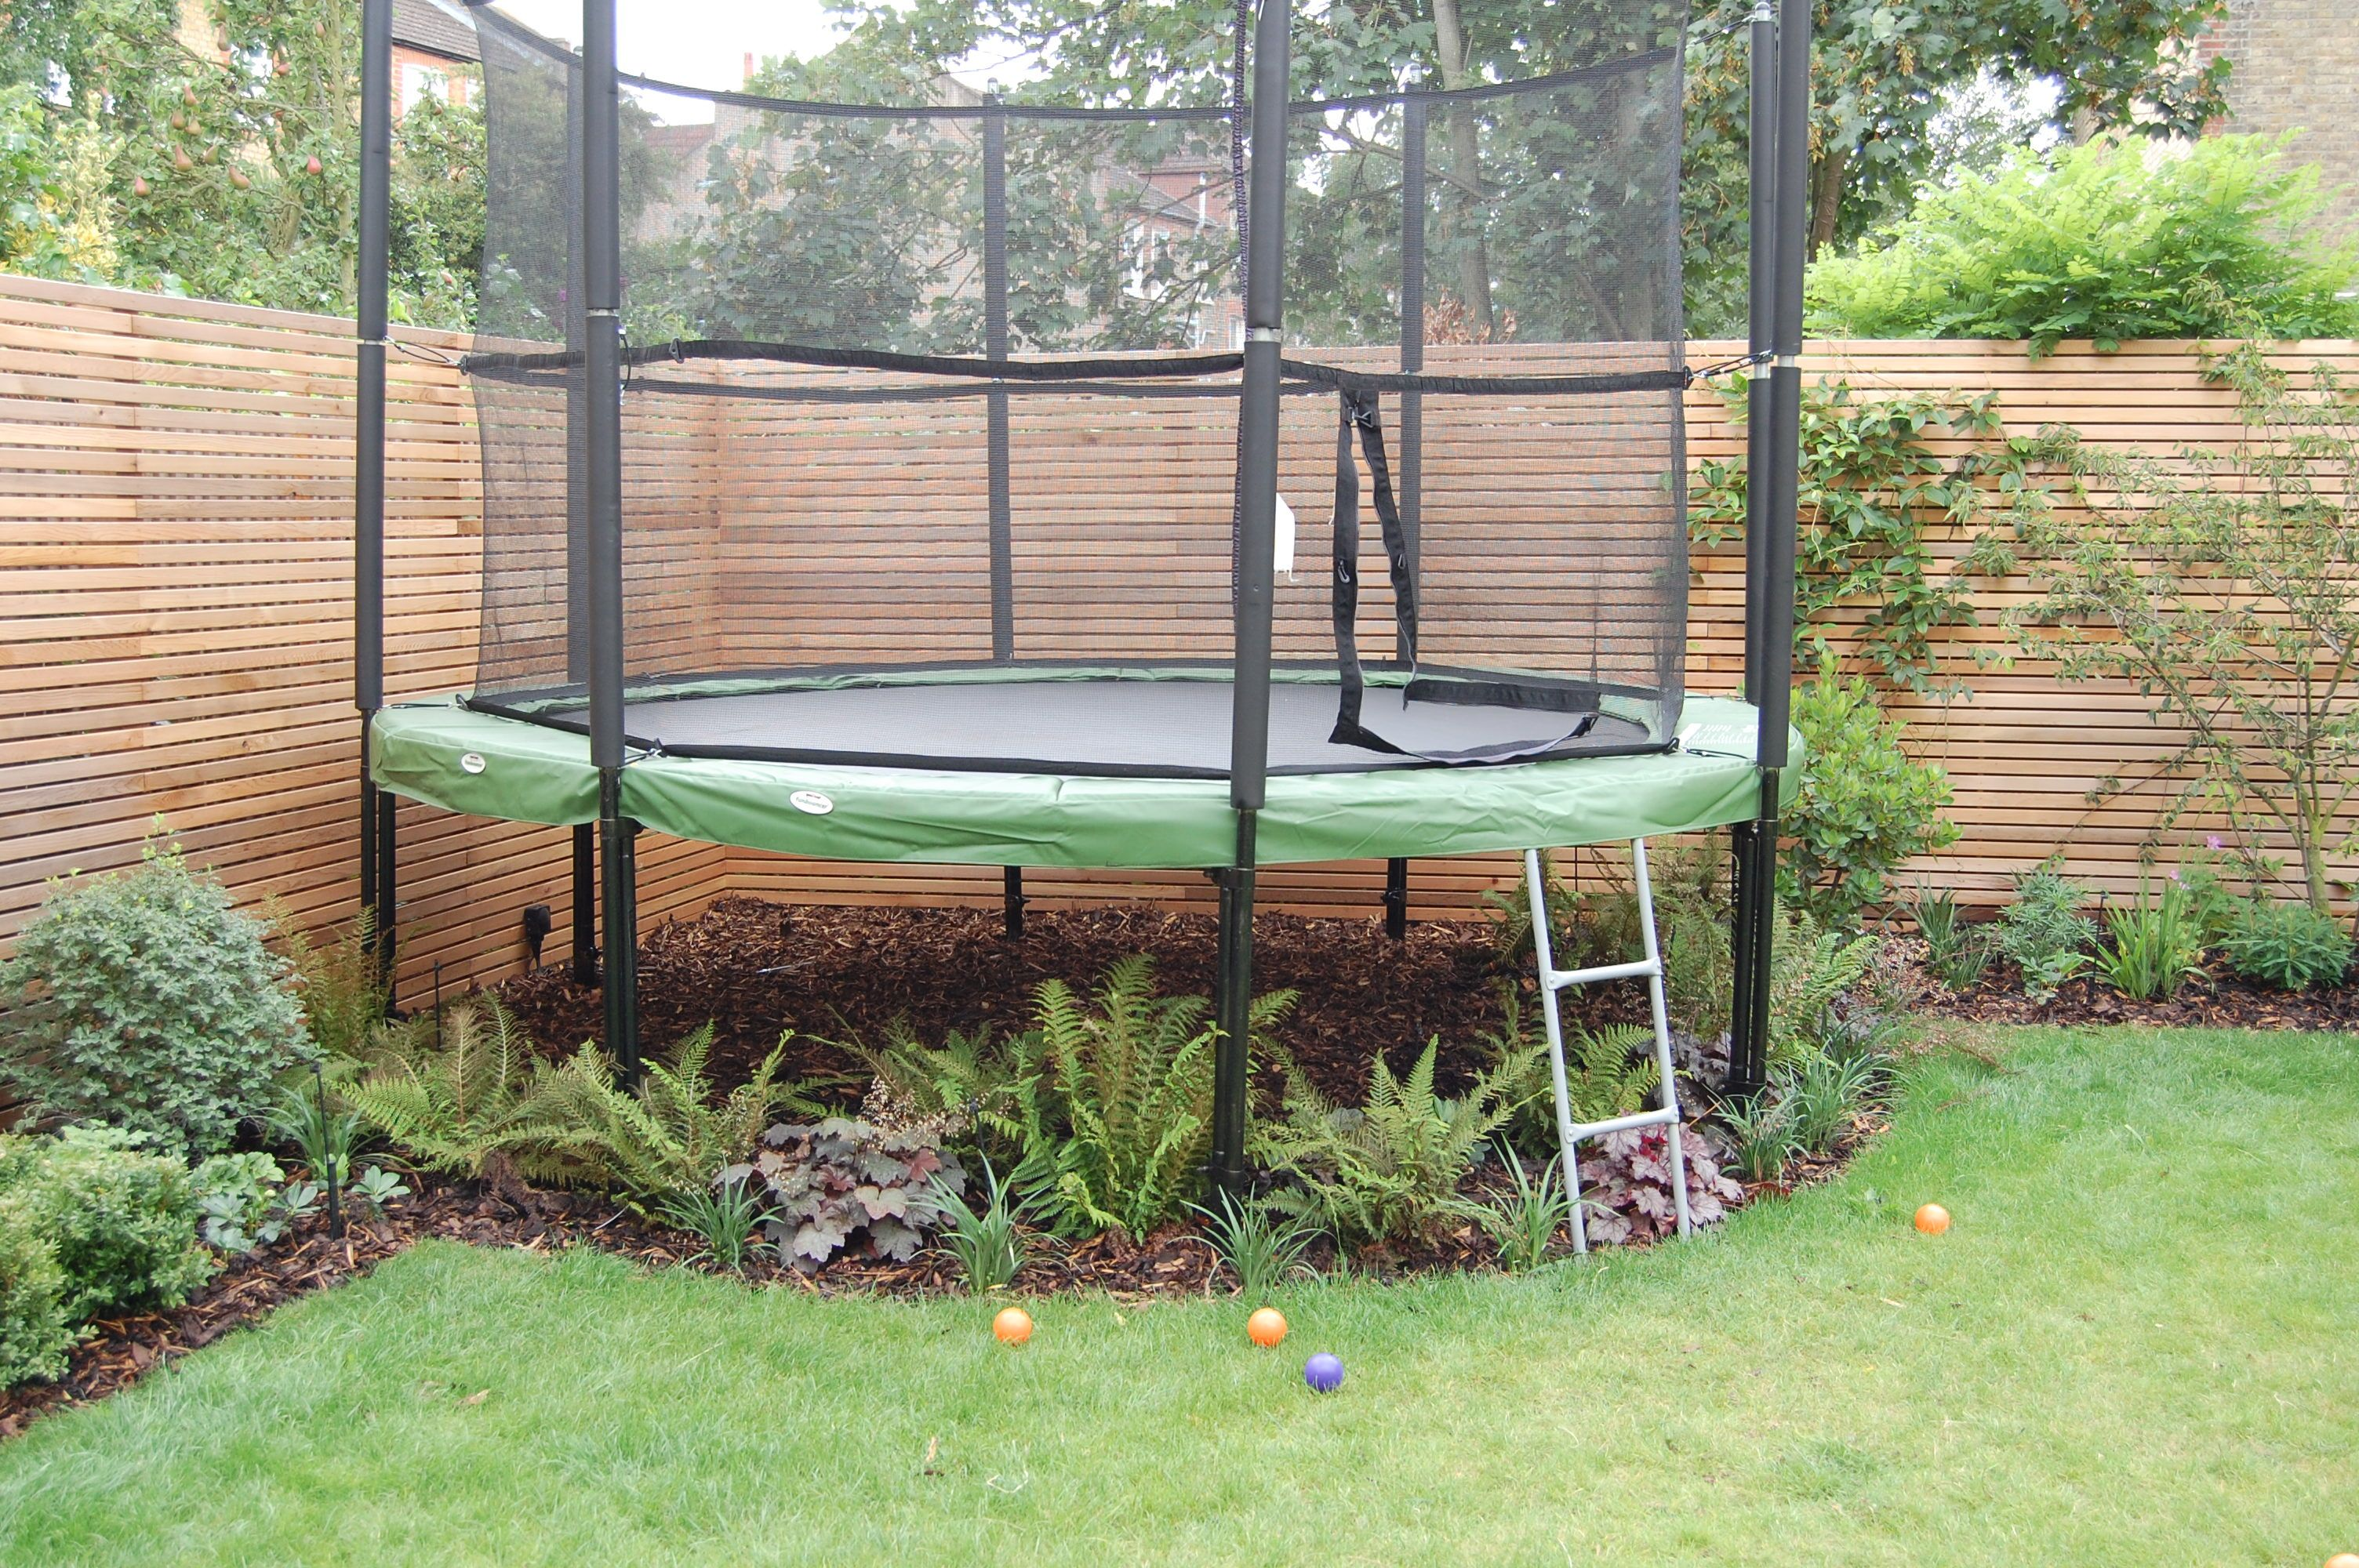 Shelley hugh jones garden design underplanted trampoline for Garden sectioning ideas